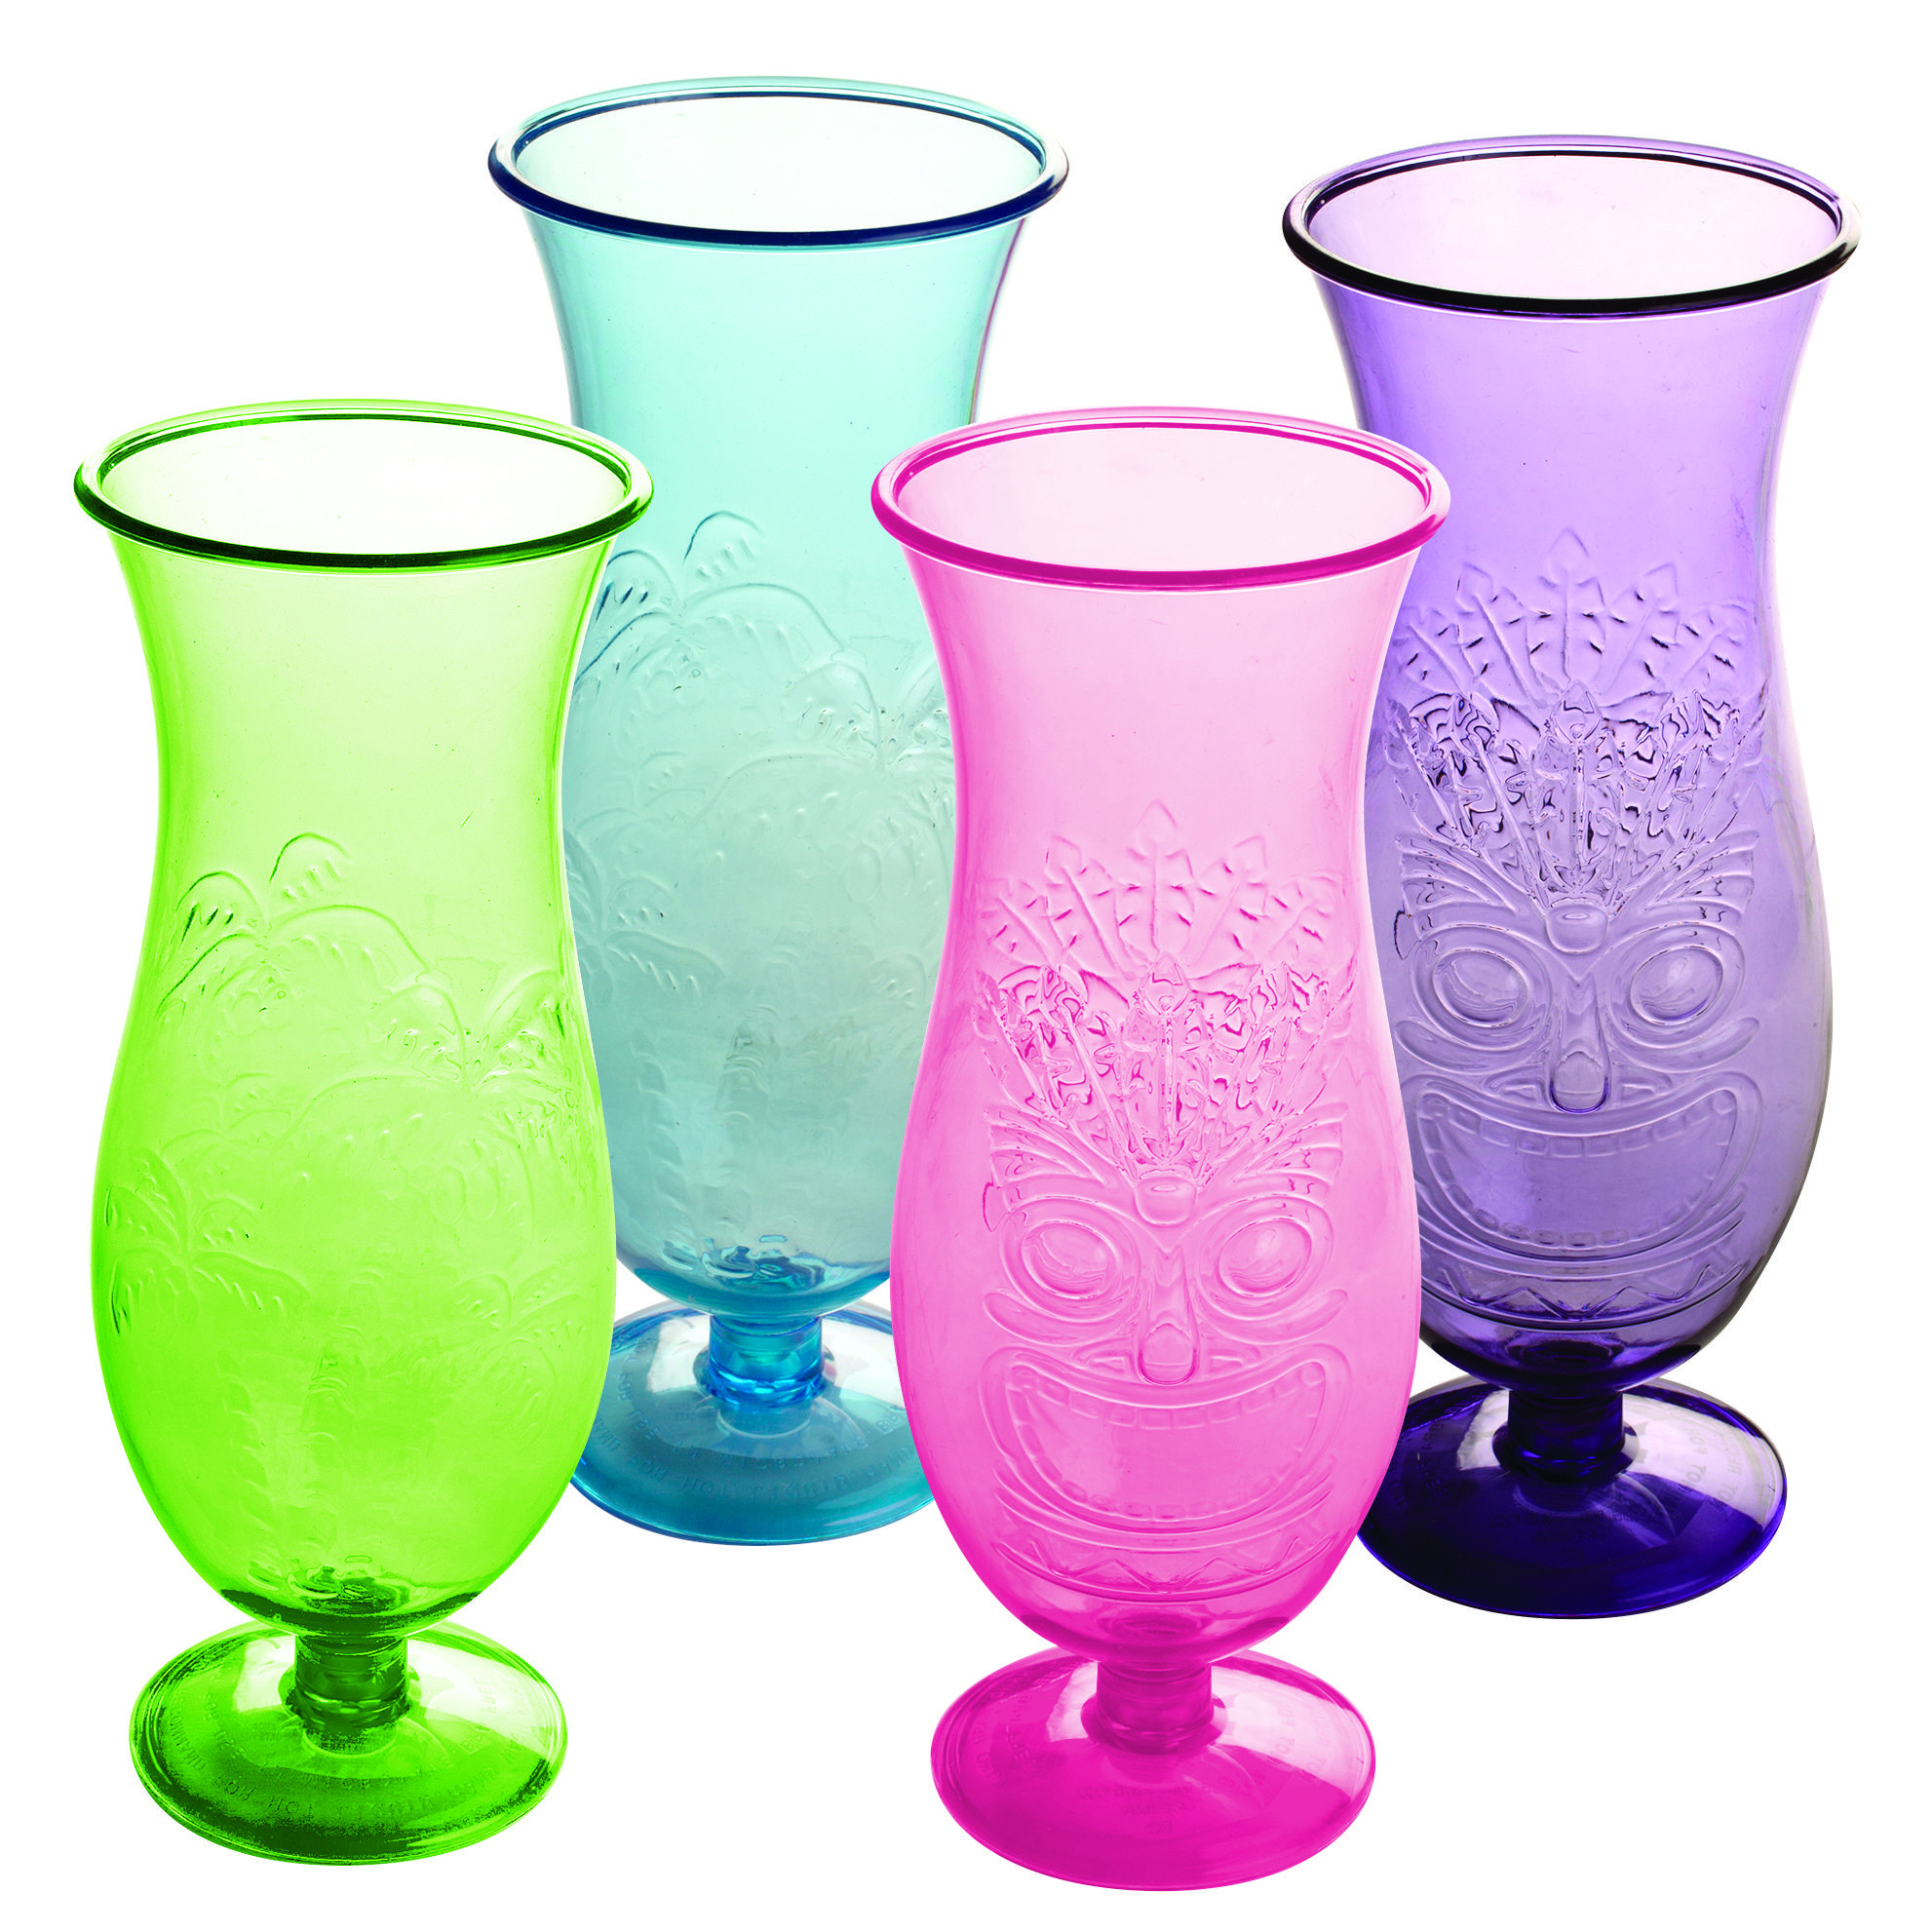 10 Trendy Bulk Vases Dollar Tree 2021 free download bulk vases dollar tree of bulk plastic luau hurricane glasses 24 4 oz at dollartree com with regard to check out dollar trees new summer fun collection of tropical themed and luau patterned